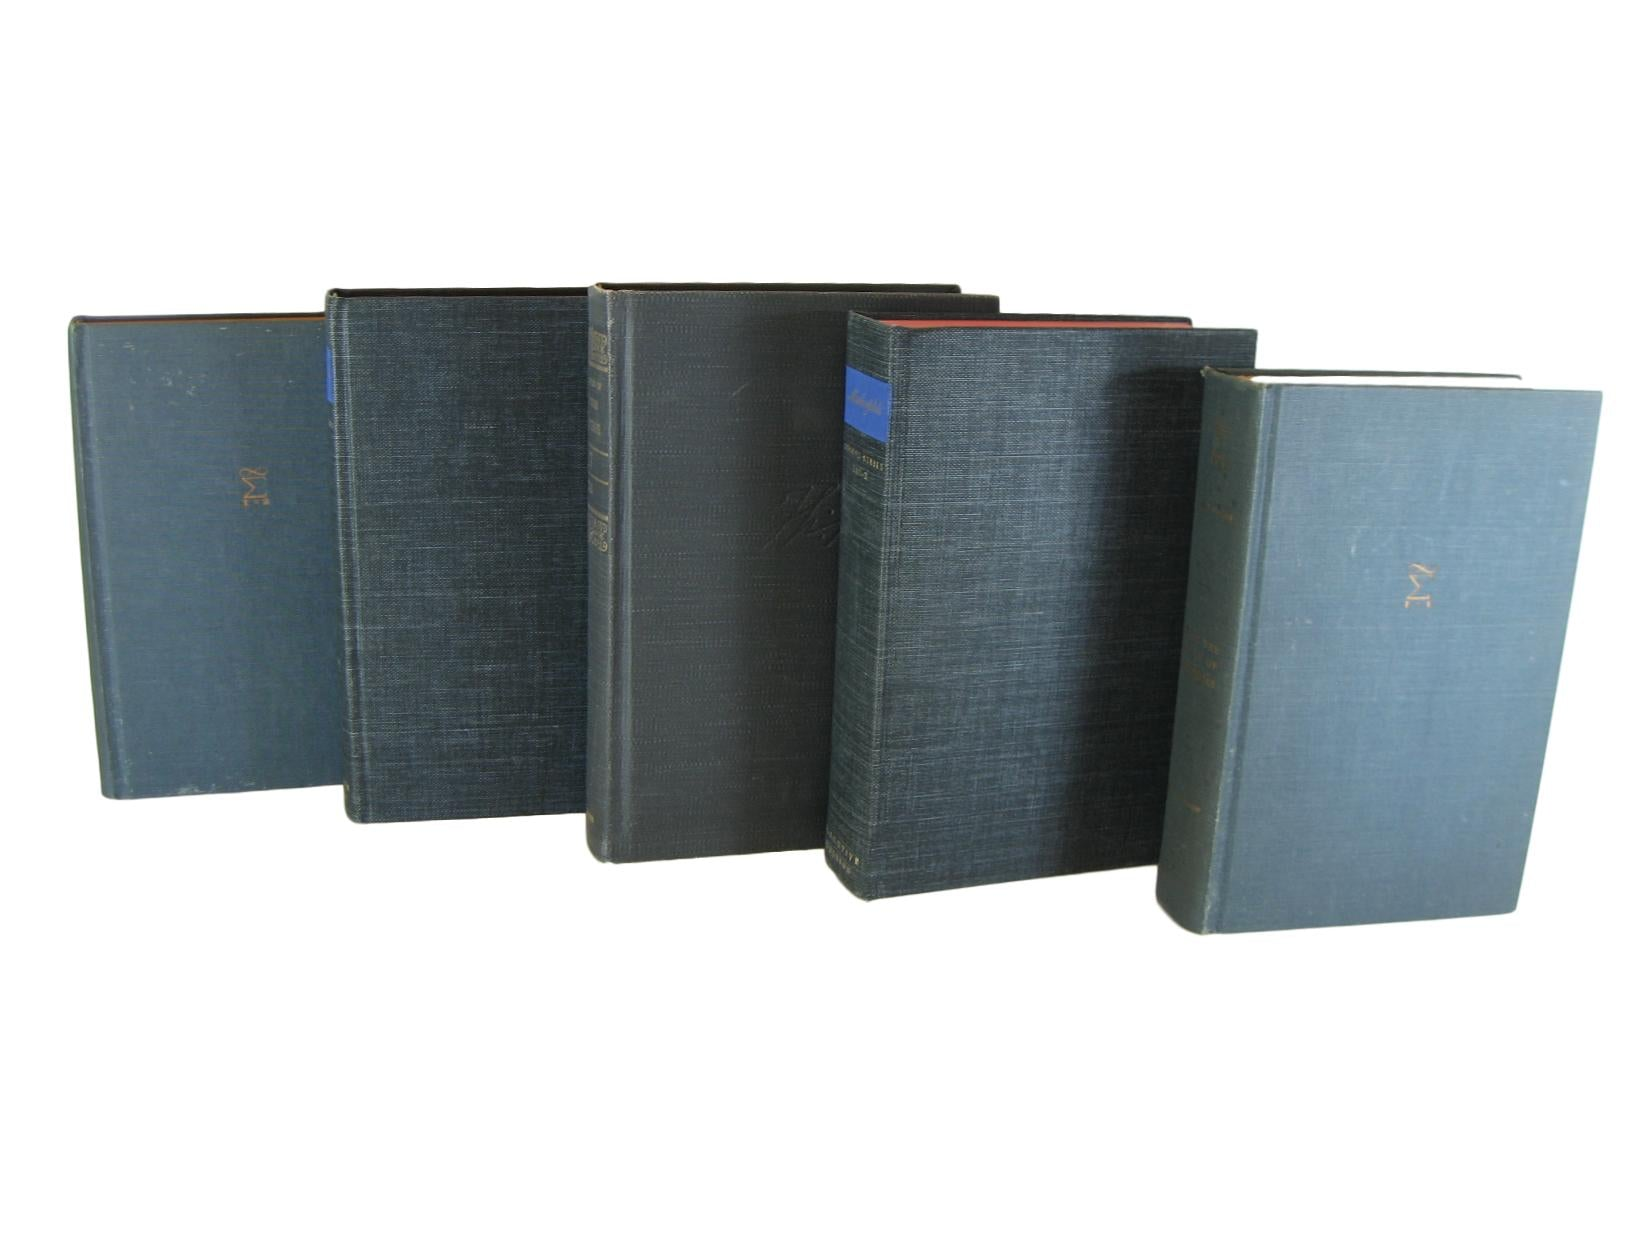 Gray  Decorative Books for Decorating and Bookshelf Design, S/5 - Decades of Vintage